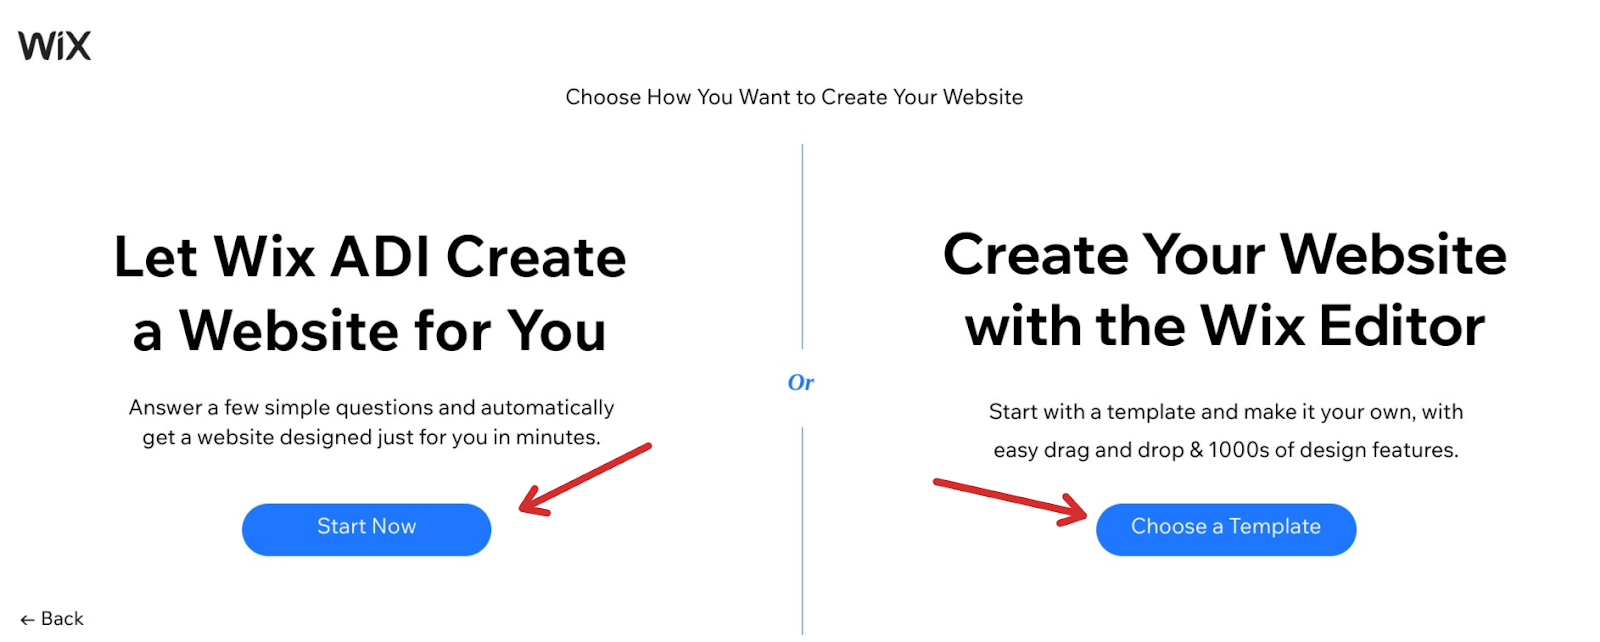 Wix create a website editor or ADI